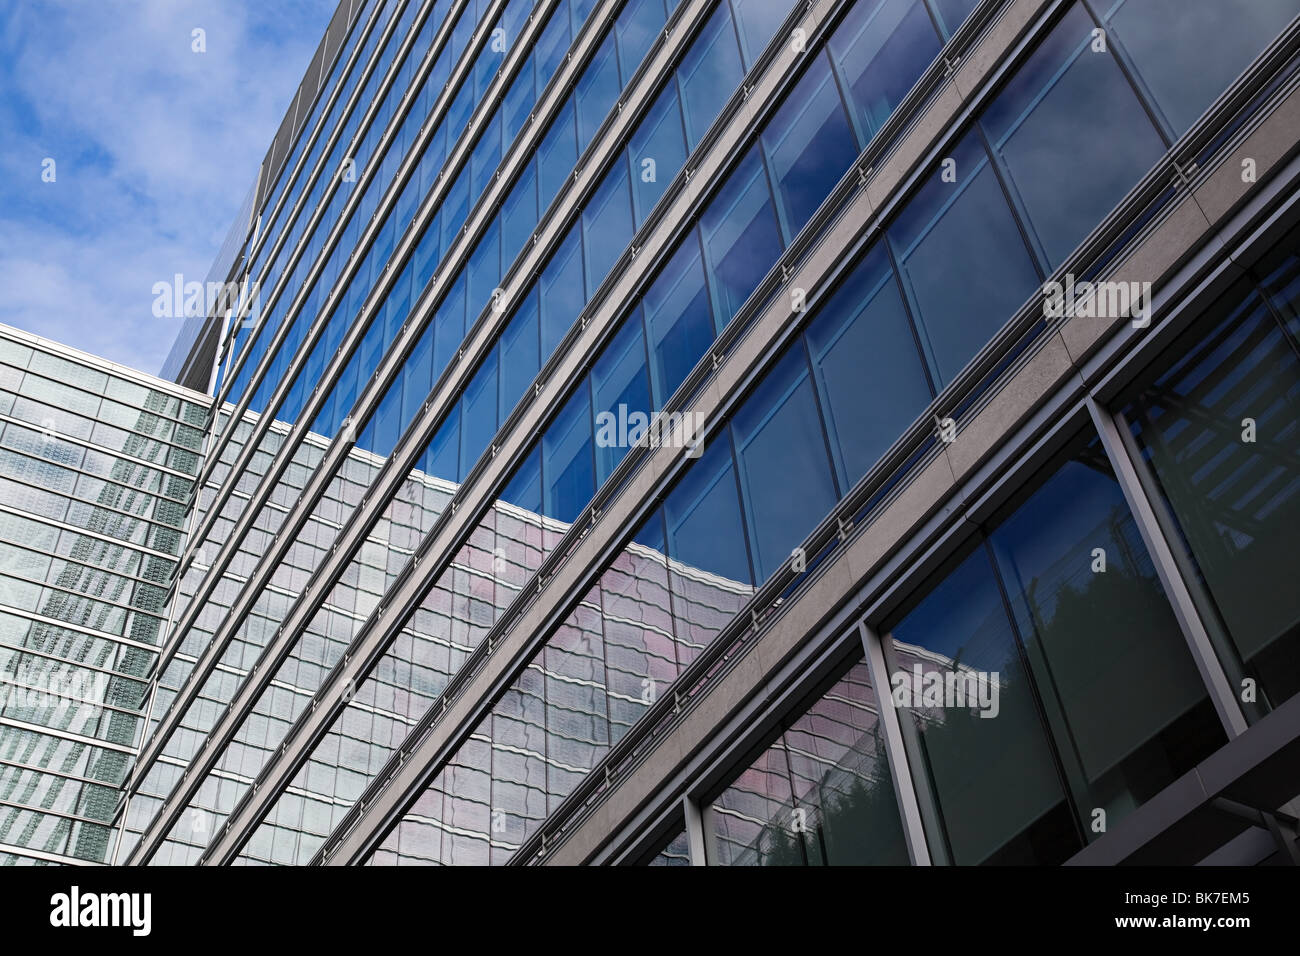 Windows of office building - Stock Image